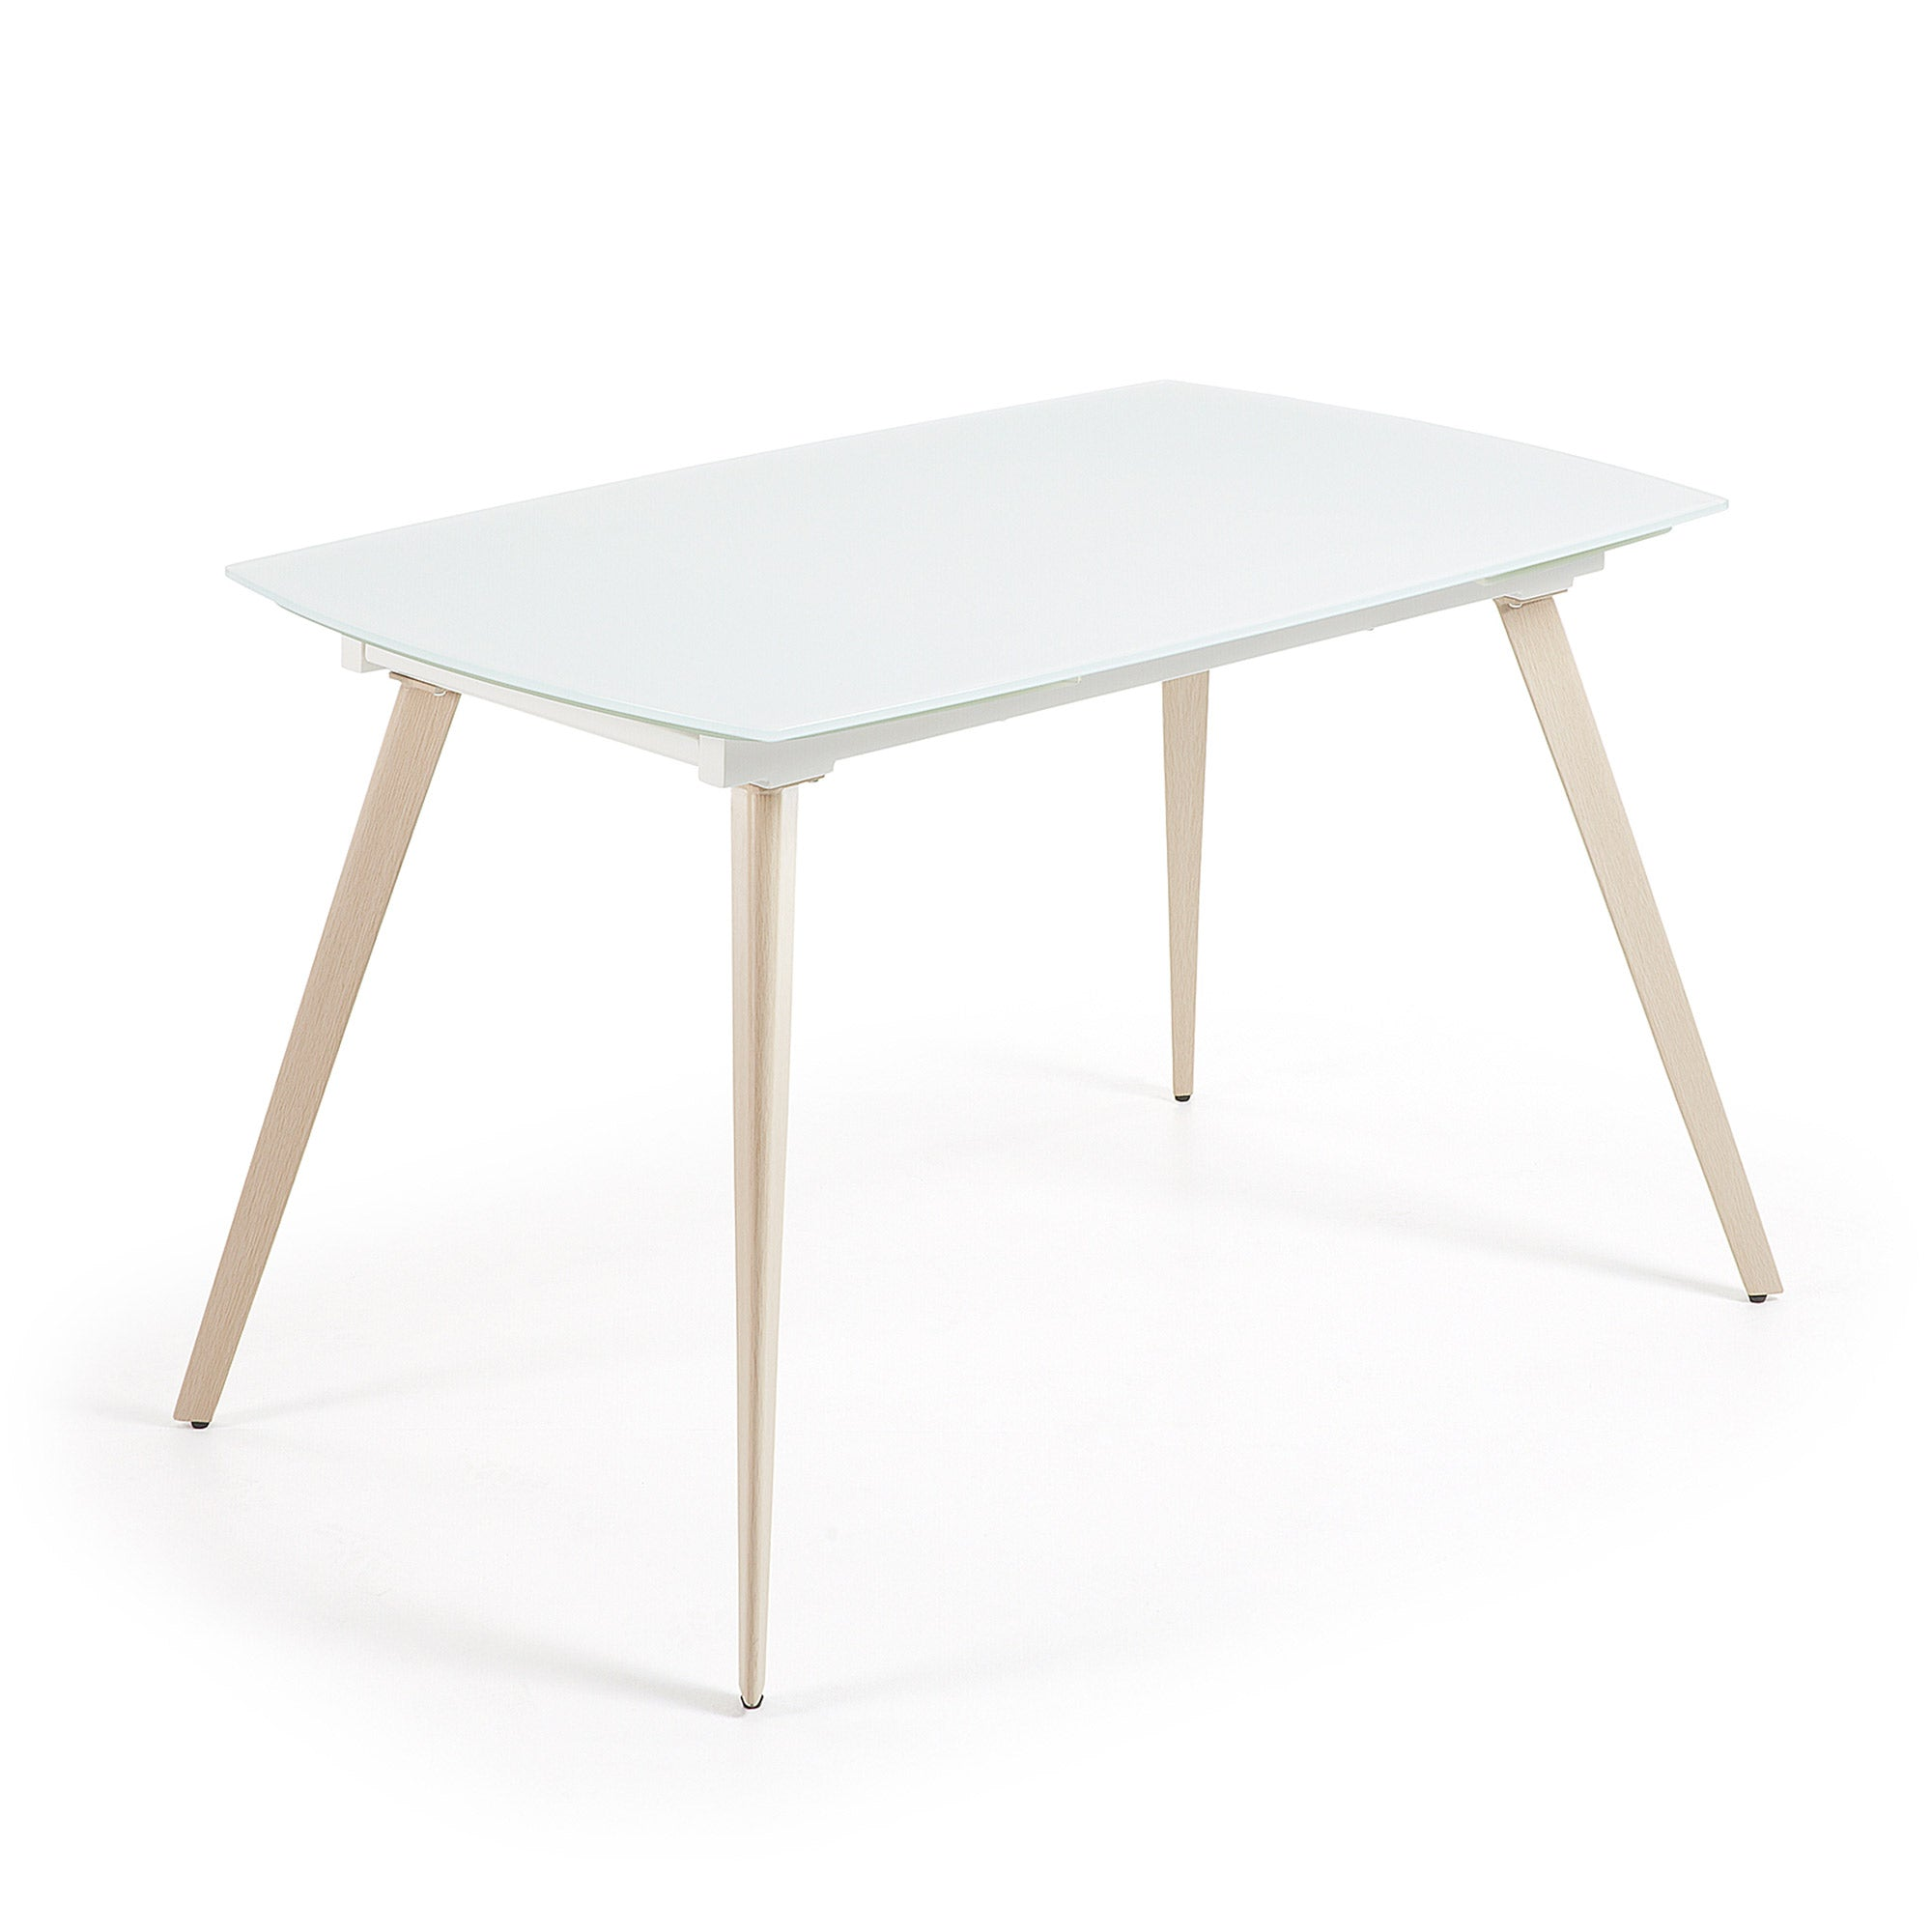 Fraser Extension Table 140-210 cm Natural & White Glass, Table - Home-Buy Interiors